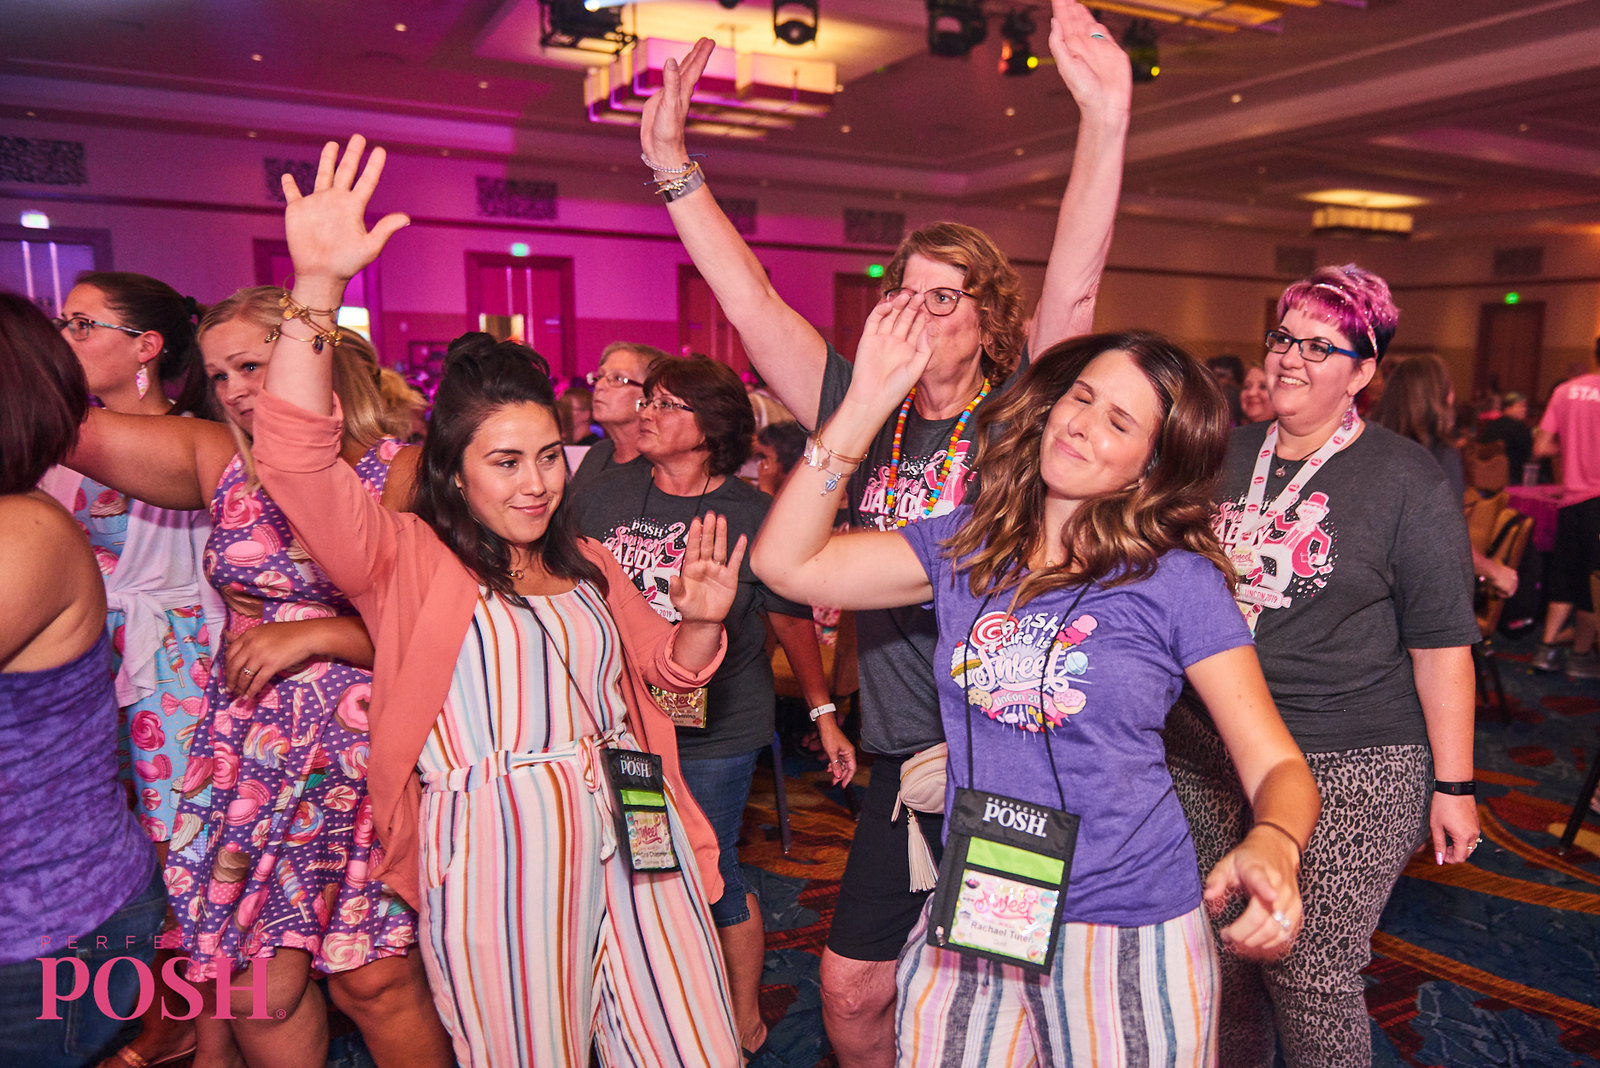 Perfectly Posh Influencers dancing at Life is Sweet UnCon 2019 in Indianapolis